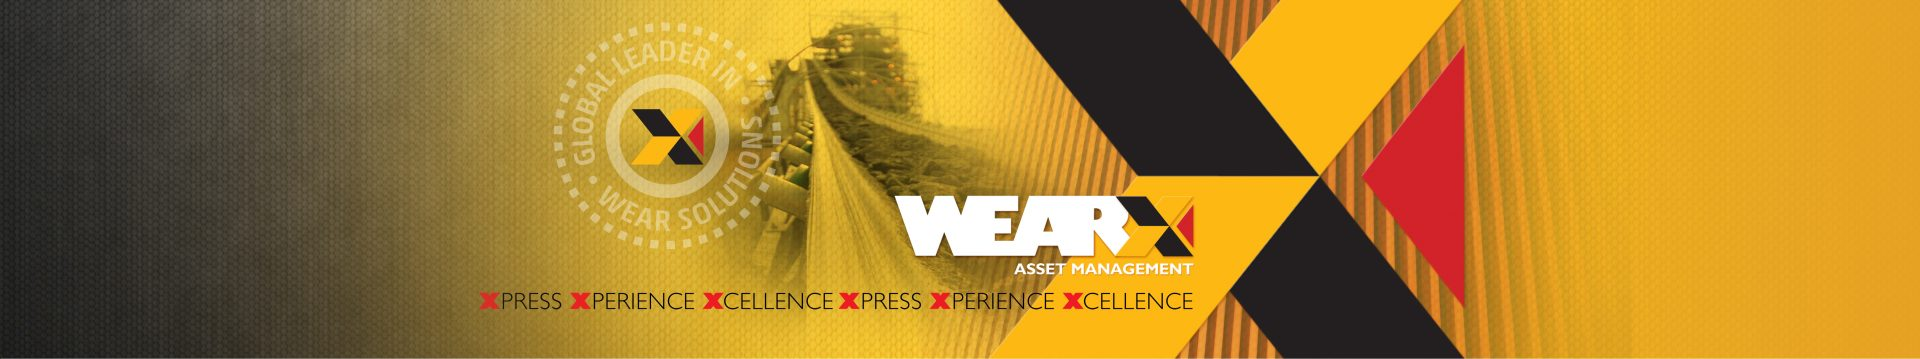 WEARX banner for promotion